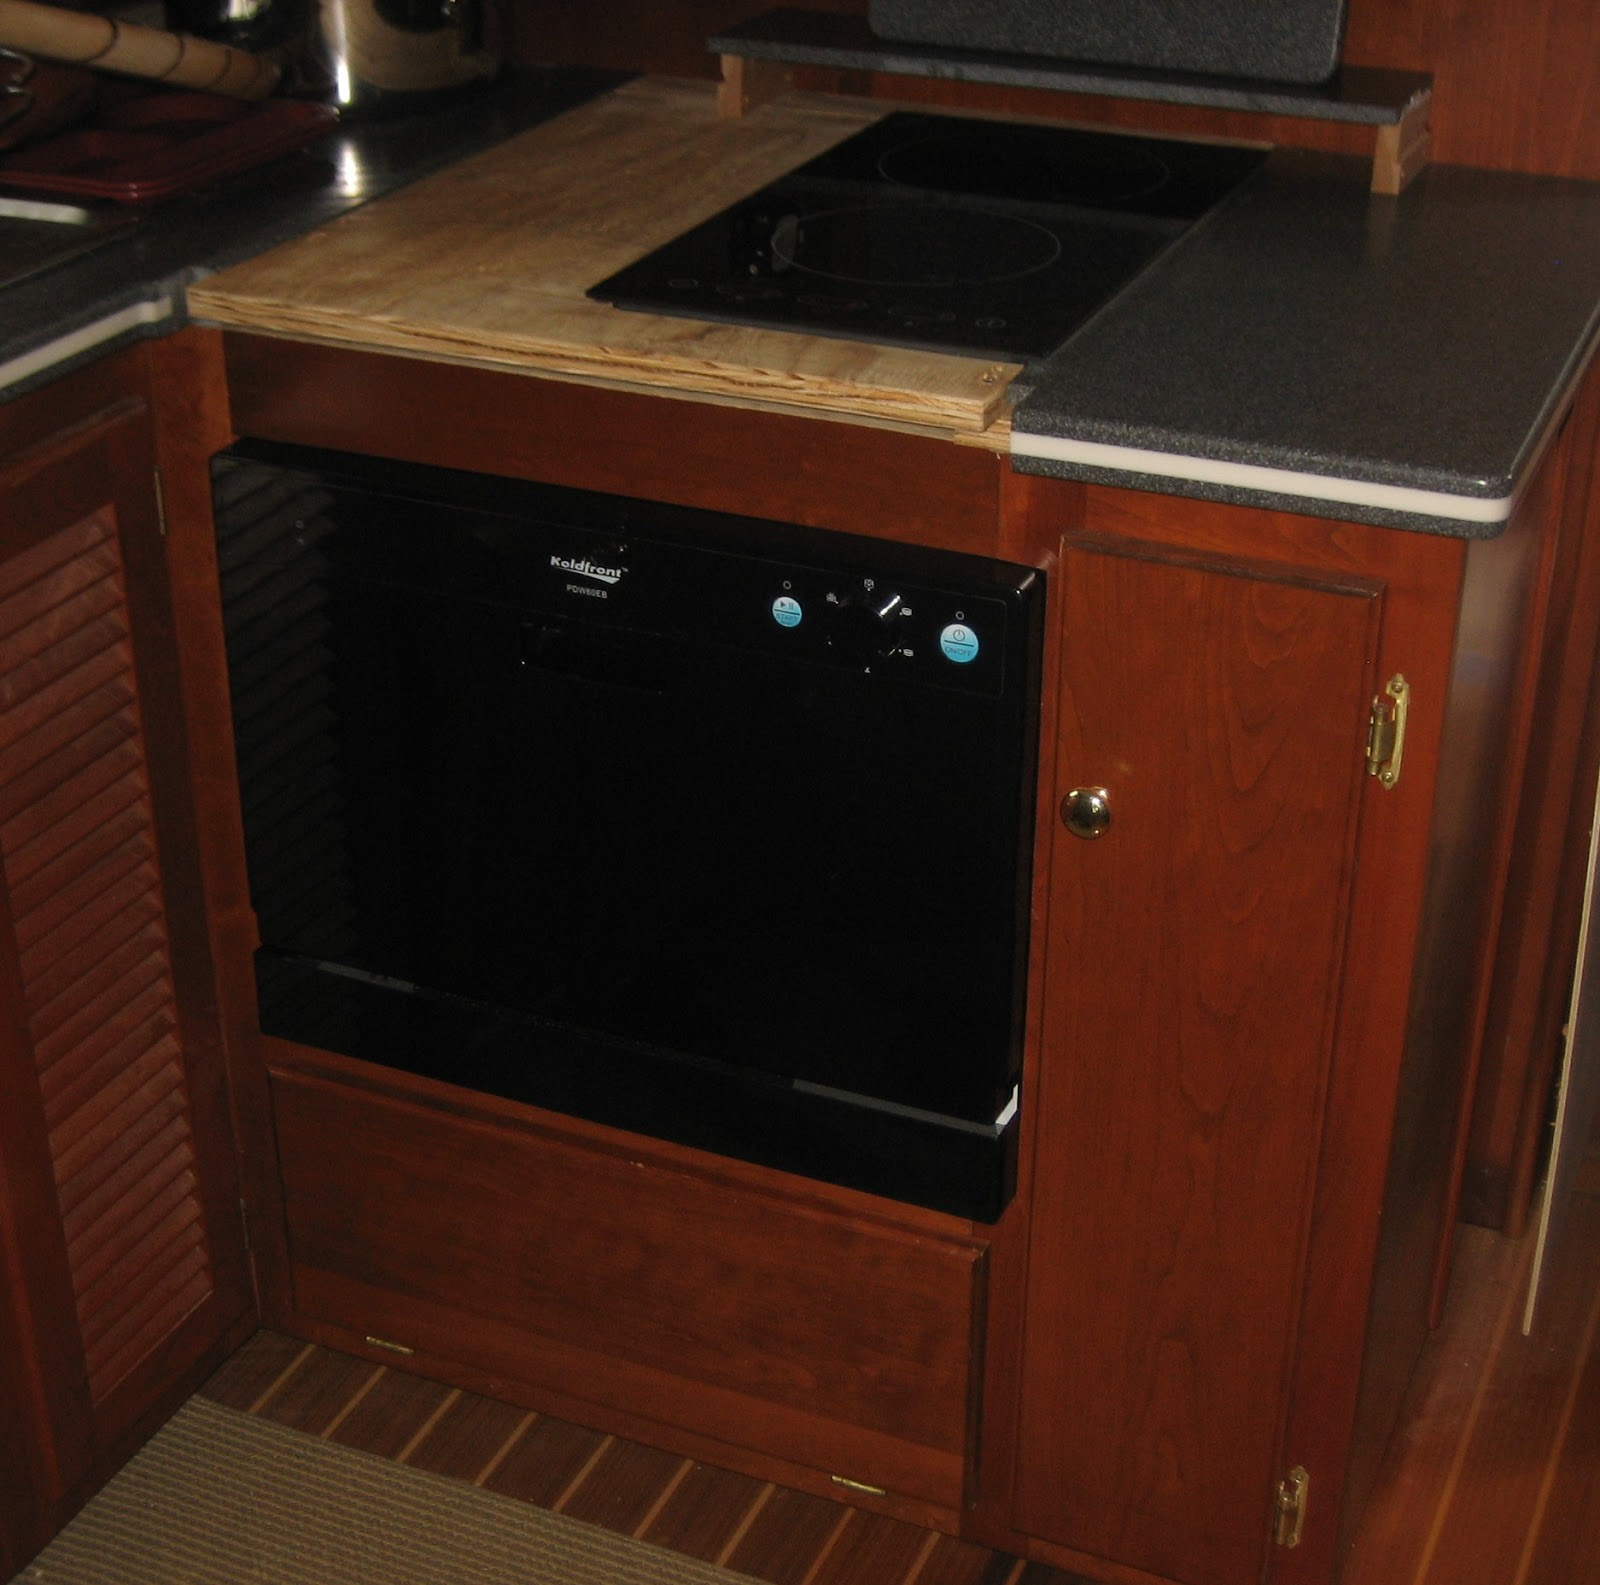 Countertop Dishwasher Mount : It looks a lot bigger on the countertop, as designed.